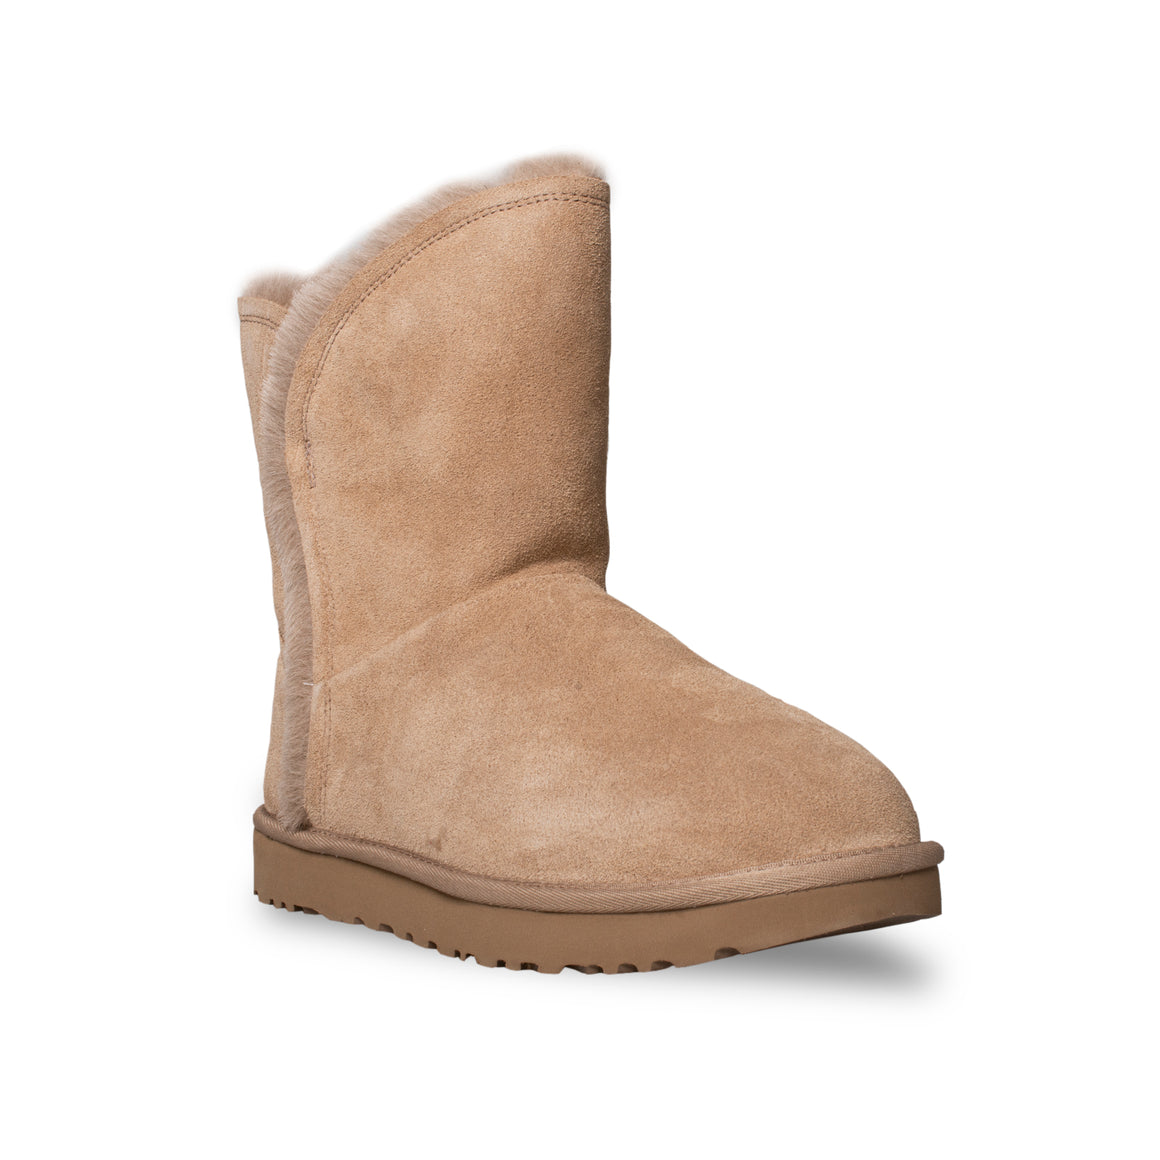 UGG Classic Short High Low Amphora Boots - Women's